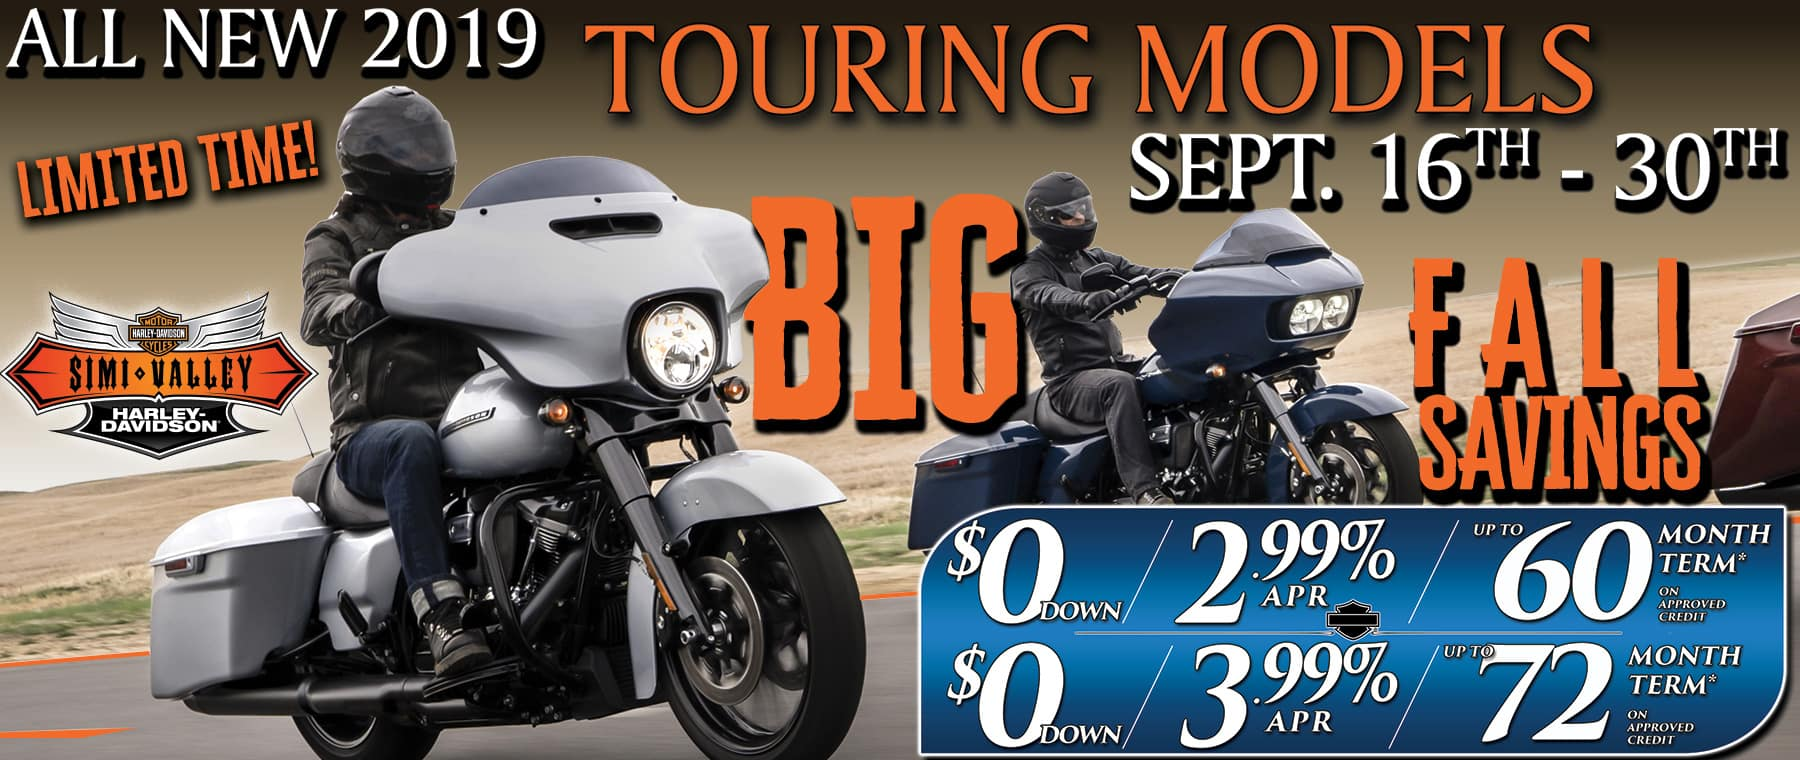 2.99 and 3.99 percent  financing for 60 and 72 months with zero down 2019 Touring Harleys